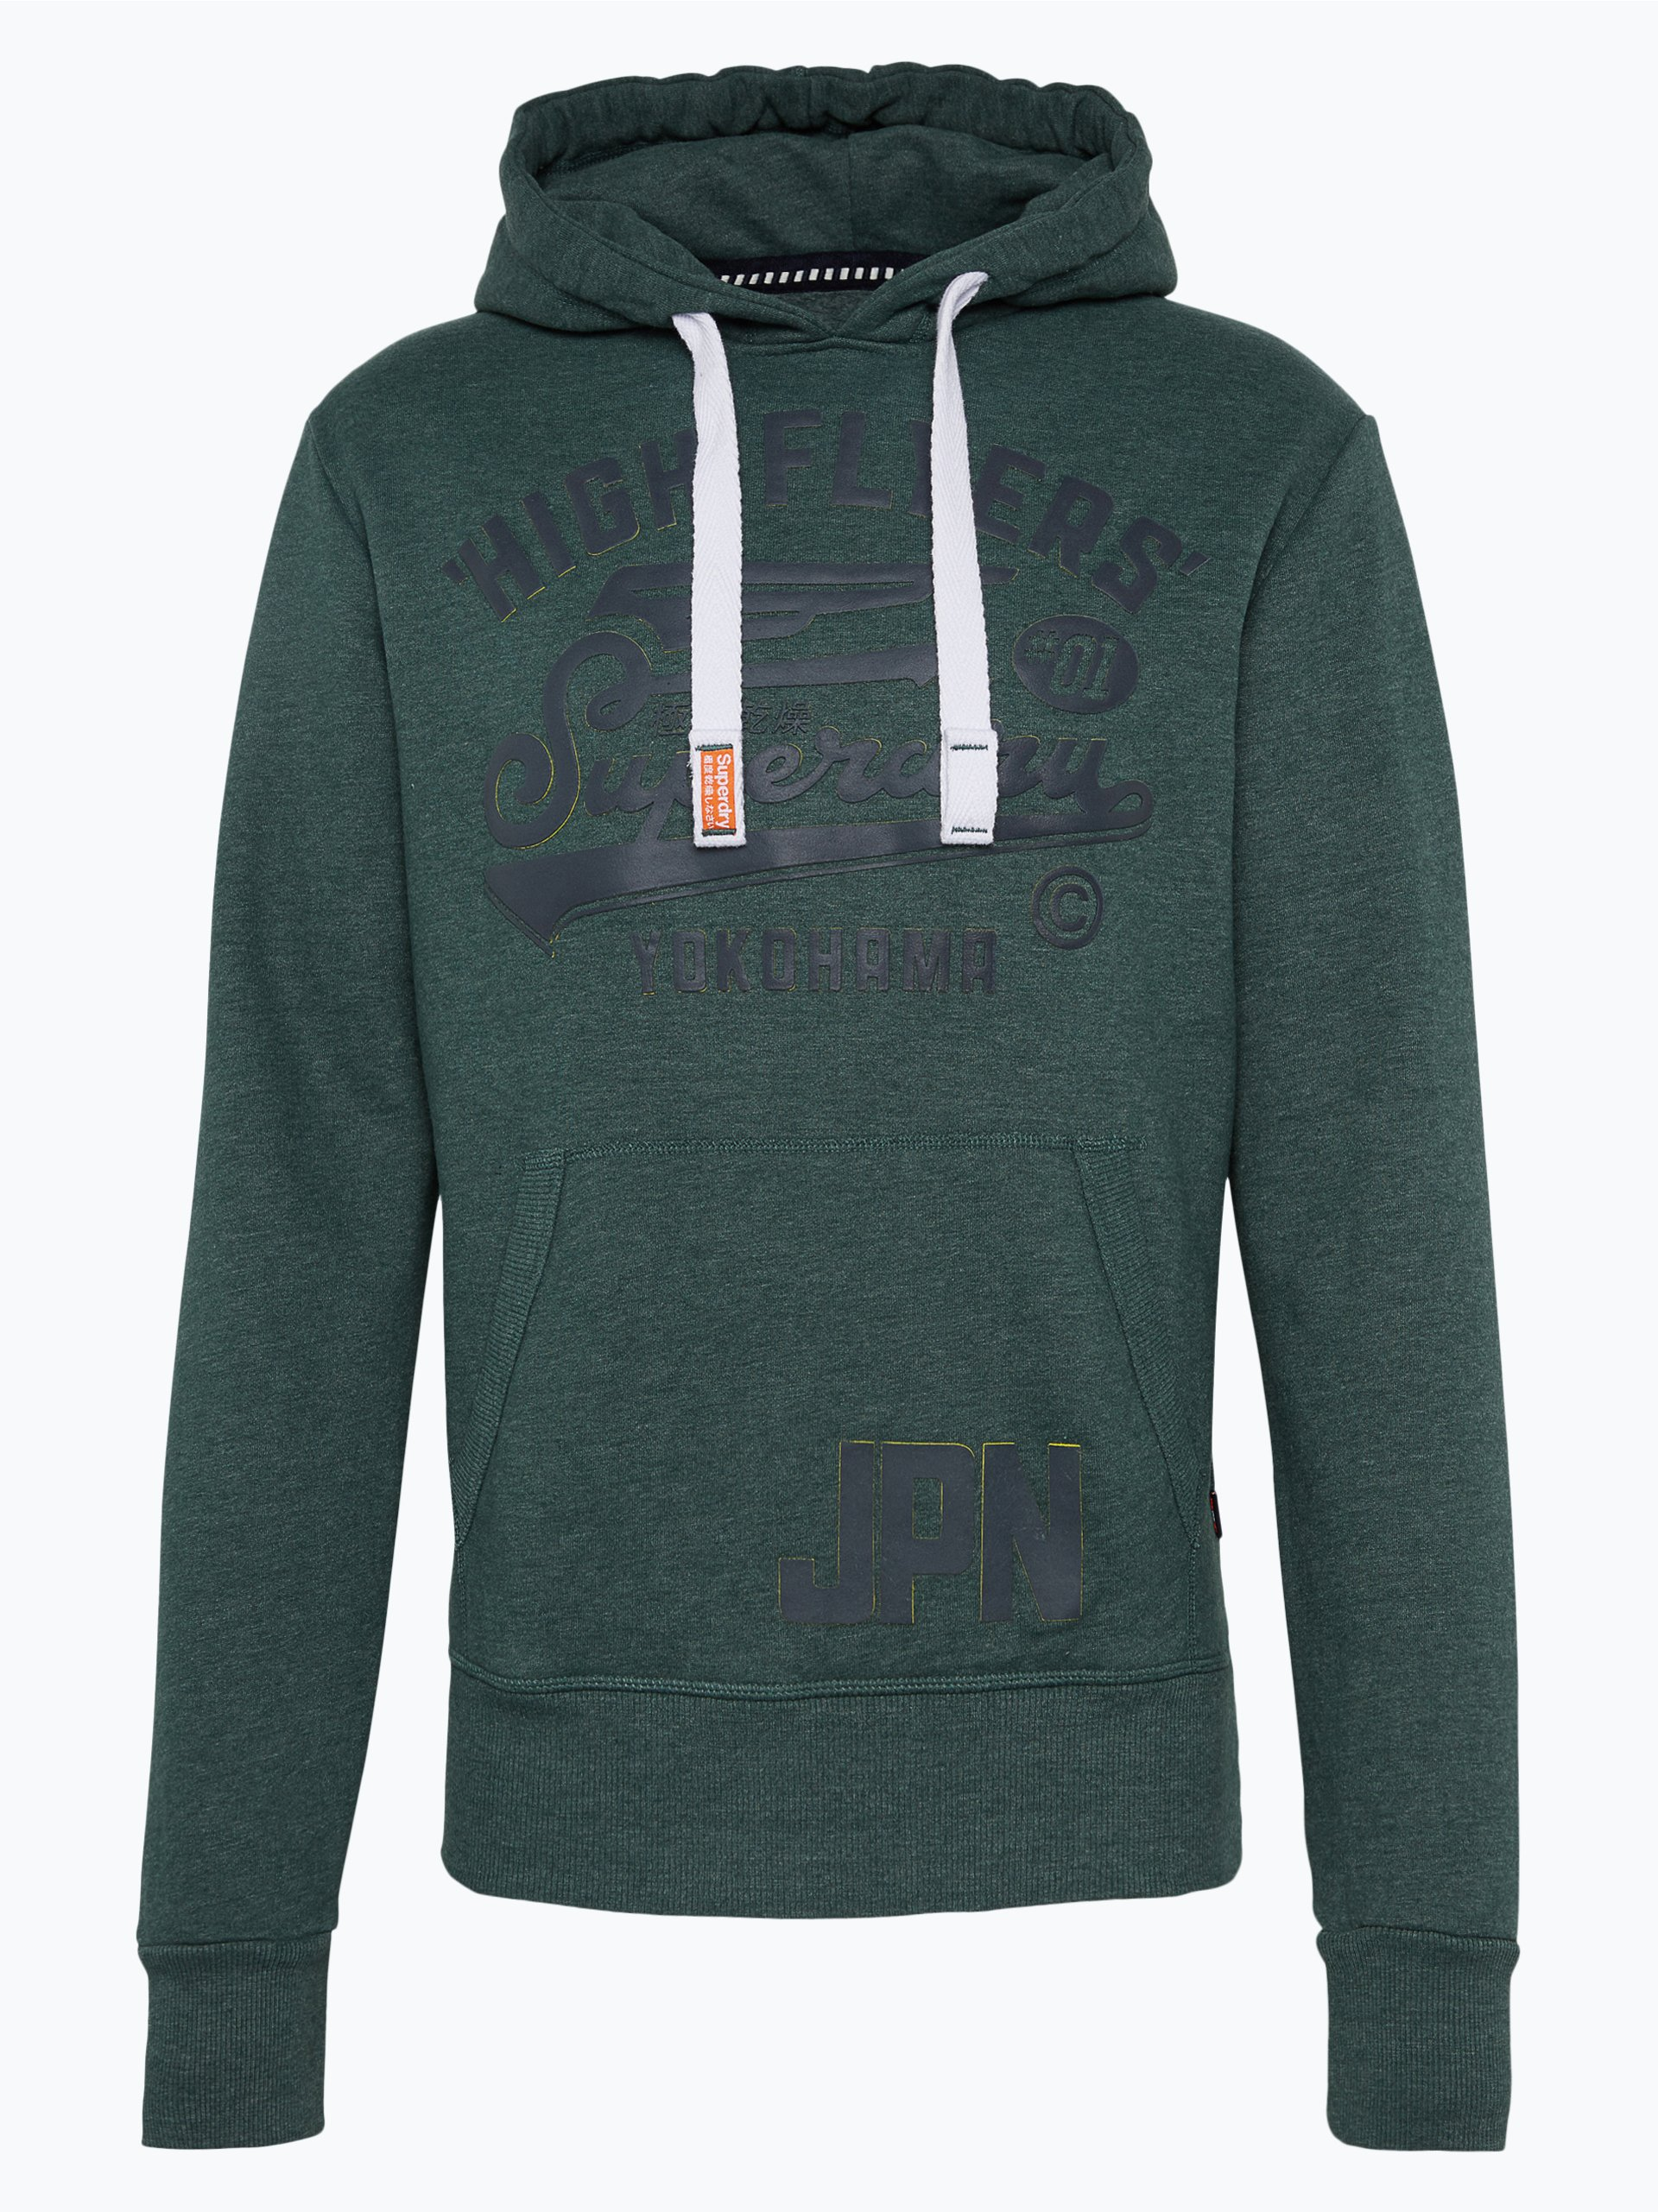 superdry herren sweatshirt gras uni online kaufen peek. Black Bedroom Furniture Sets. Home Design Ideas